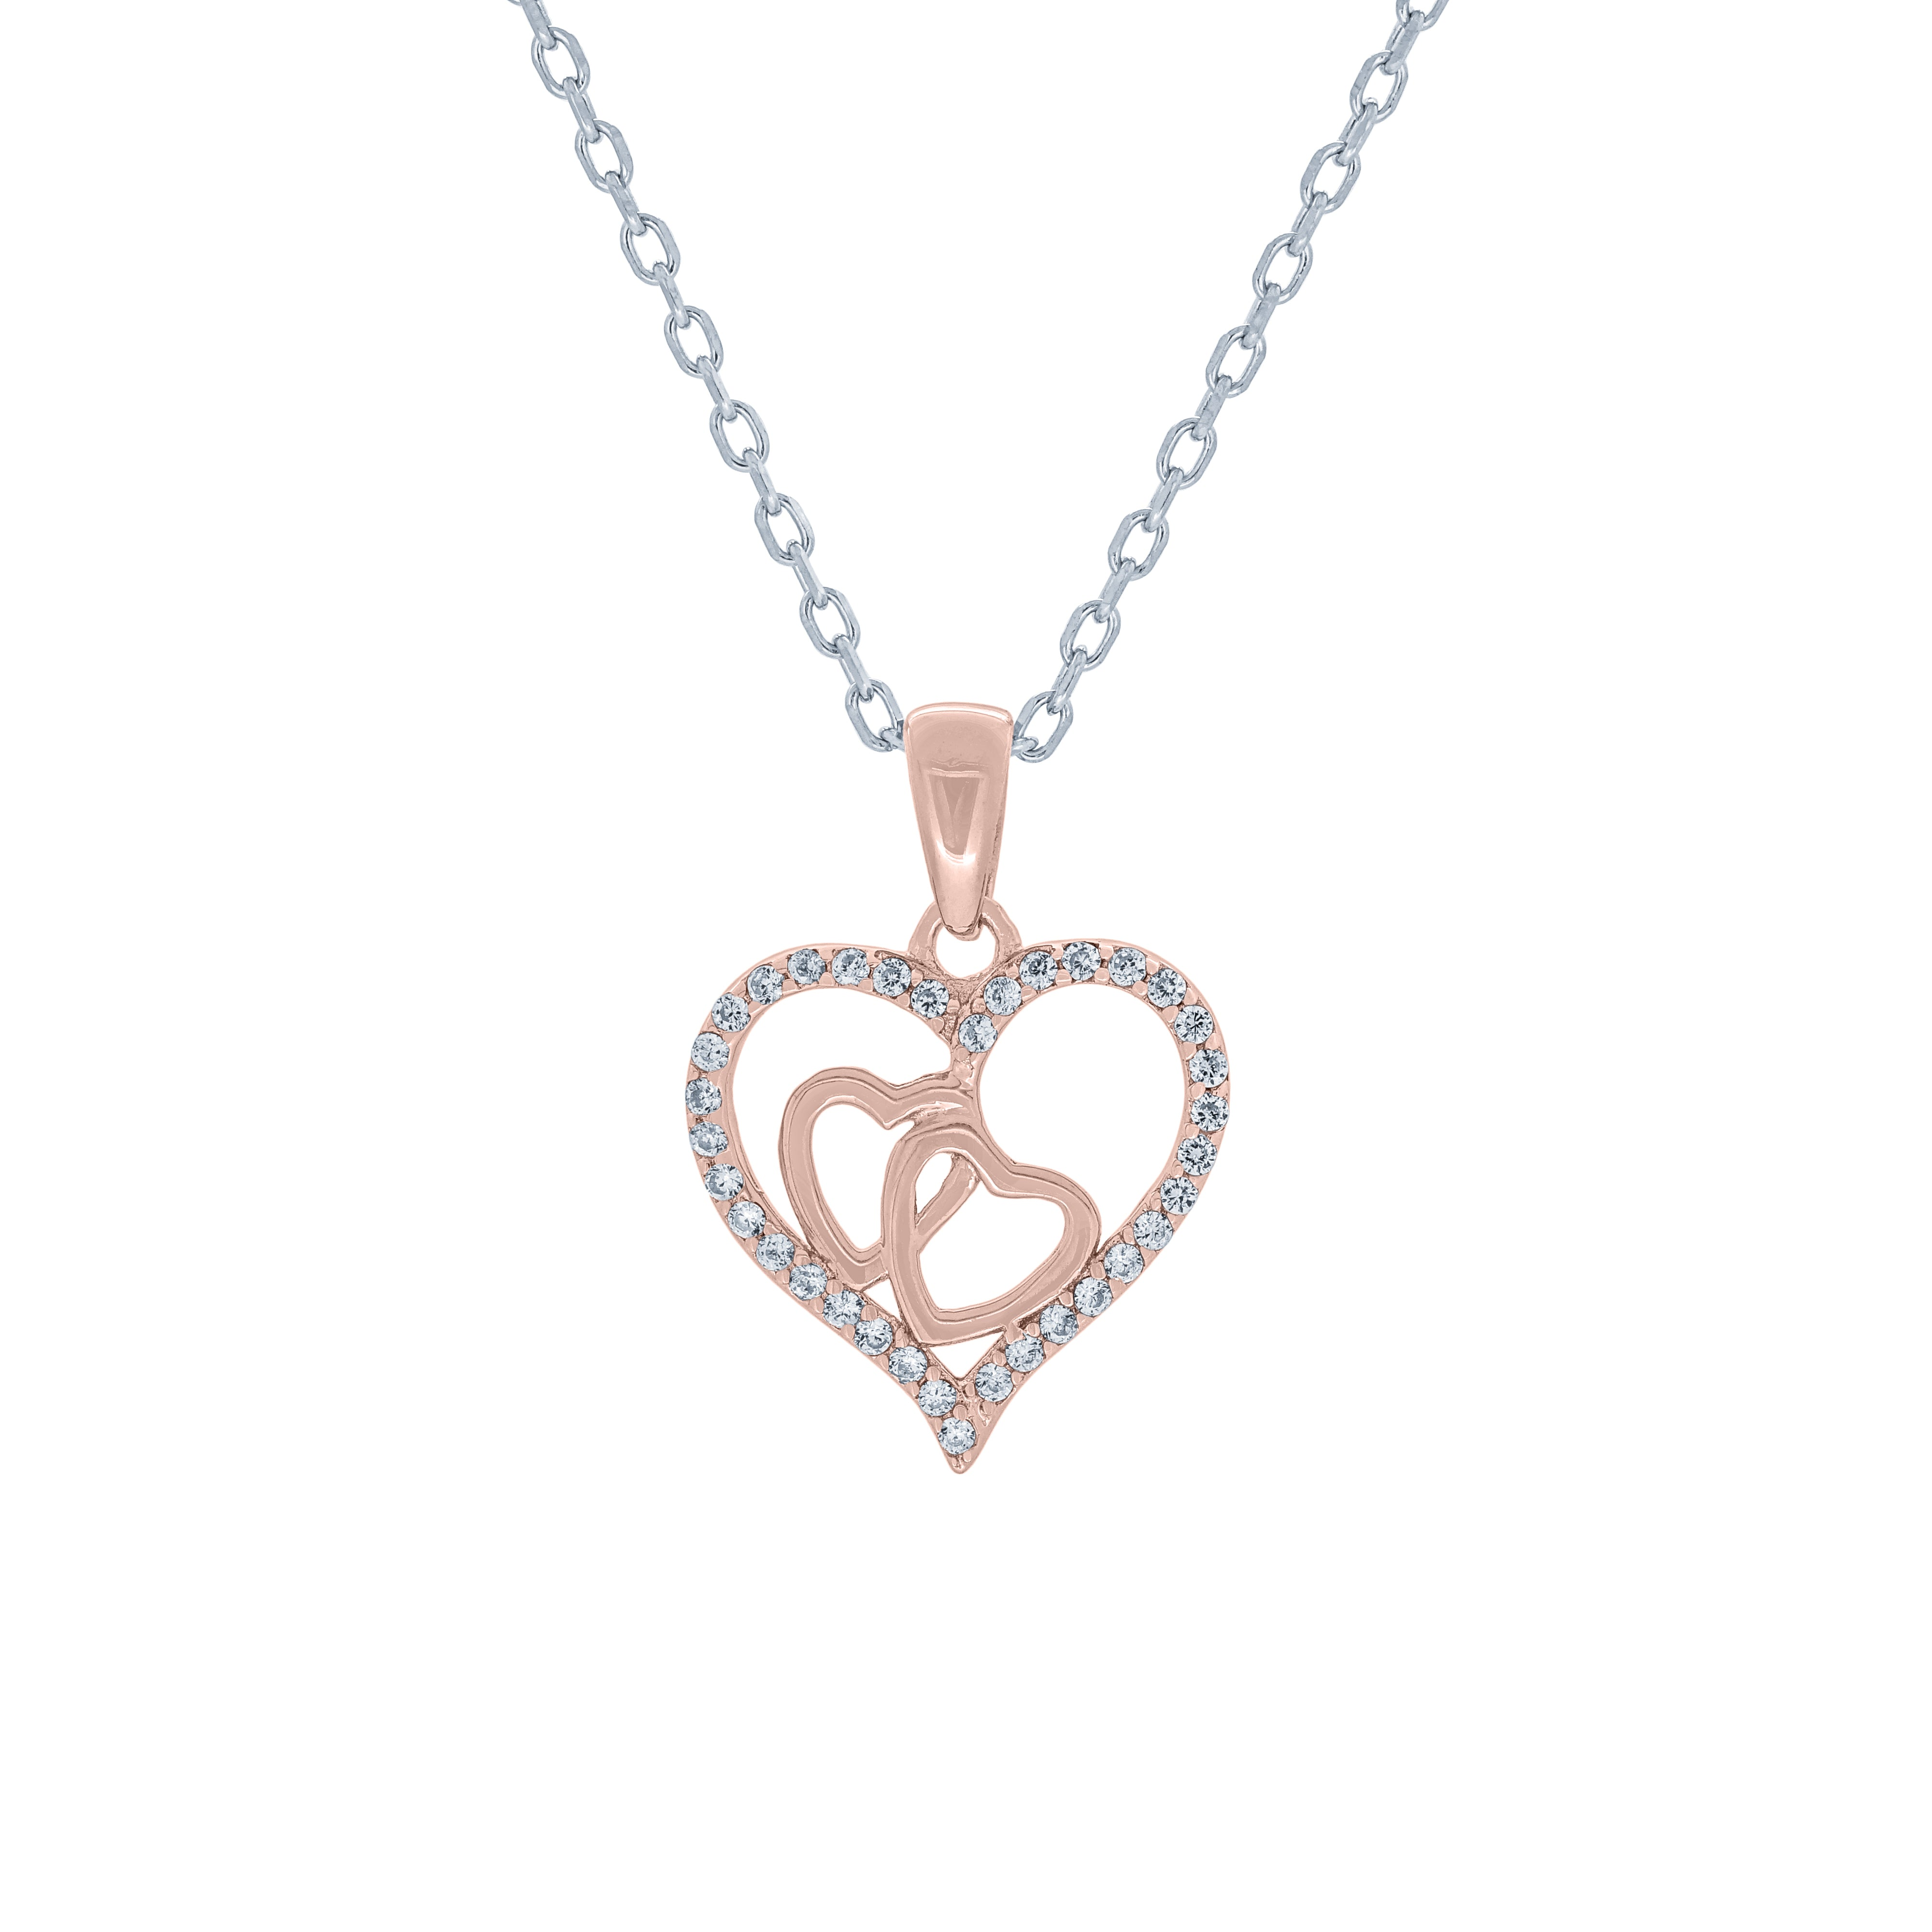 (100144A) White Cubic Zirconia Heart Pendant Necklace In Sterling Silver and Rose Gold Plate